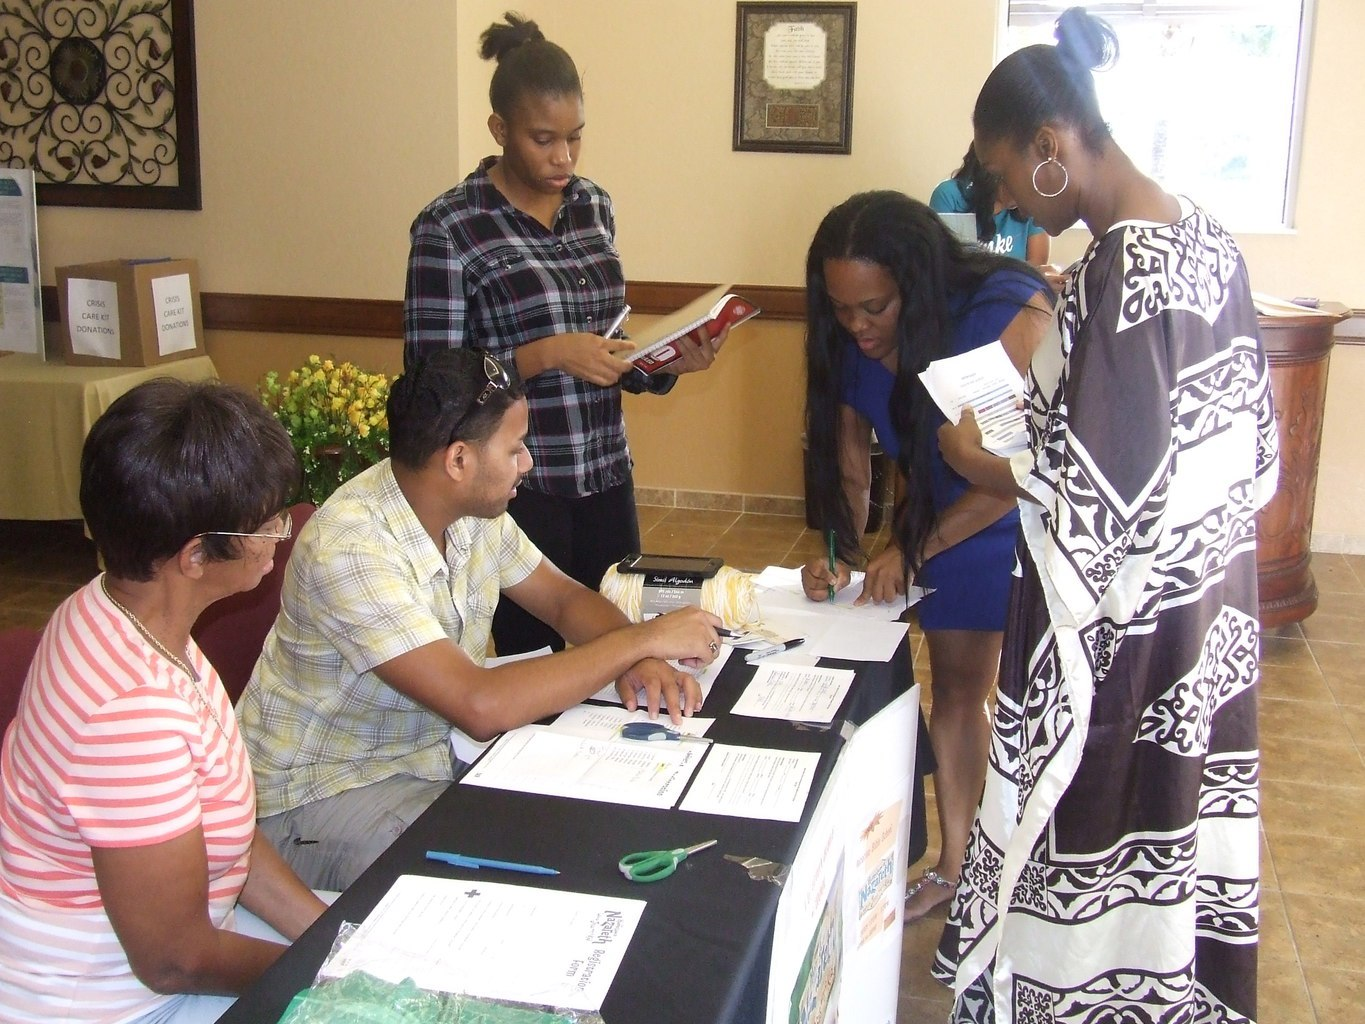 group of people at a table signing papers in the foyer entrance